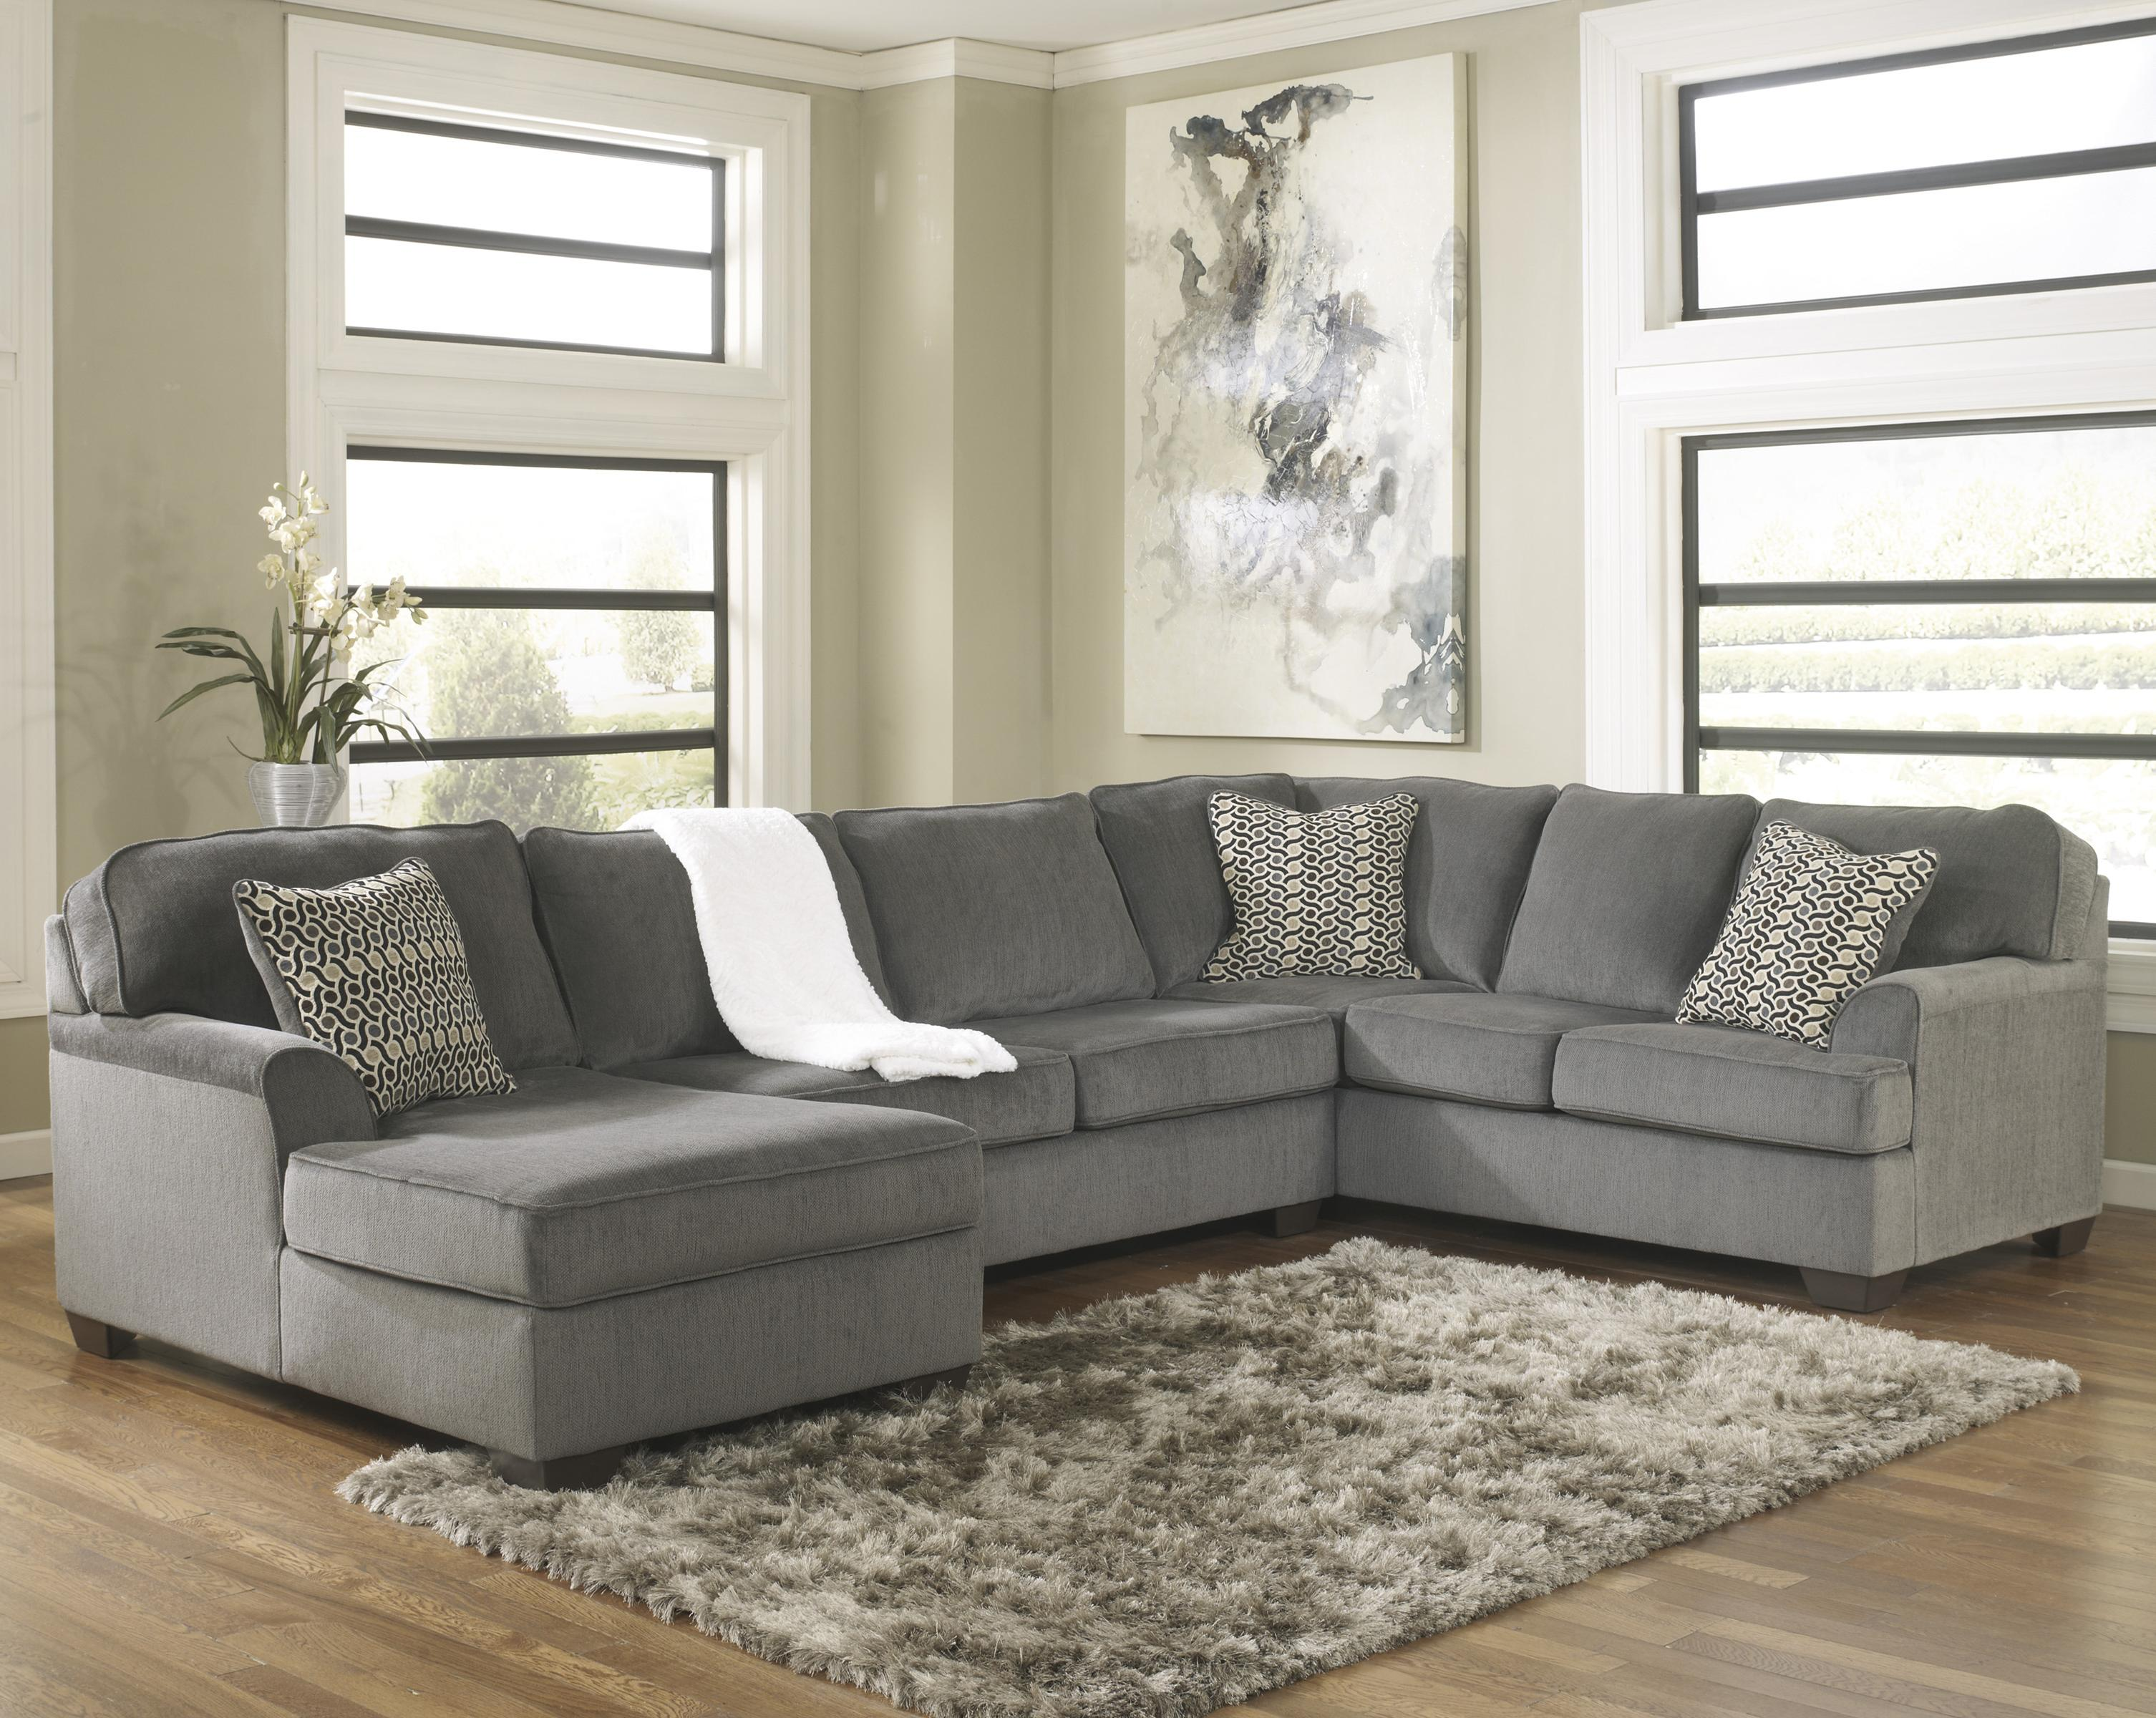 Ashley furniture loric smoke contemporary 3 piece for Ashley chaise sectional